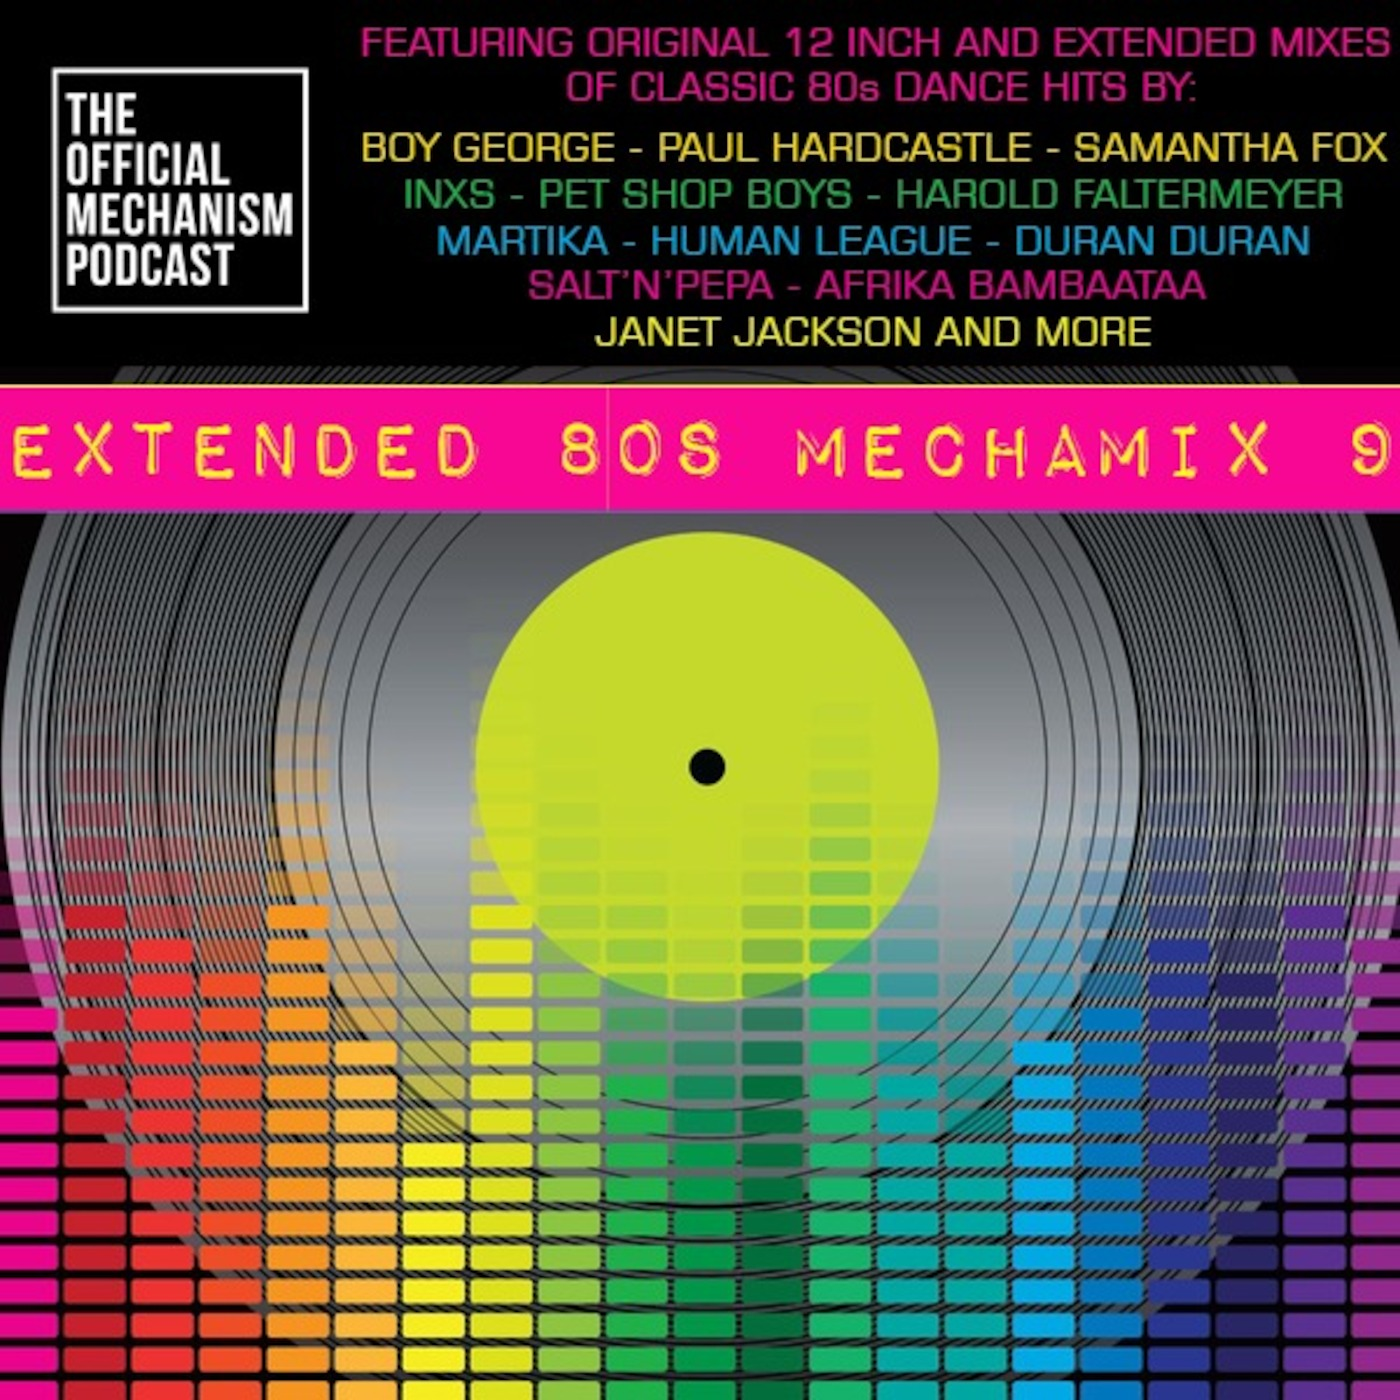 885 - EXTENDED 80's MECHAMIX 9 THE OFFICIAL MECHANISM podcast